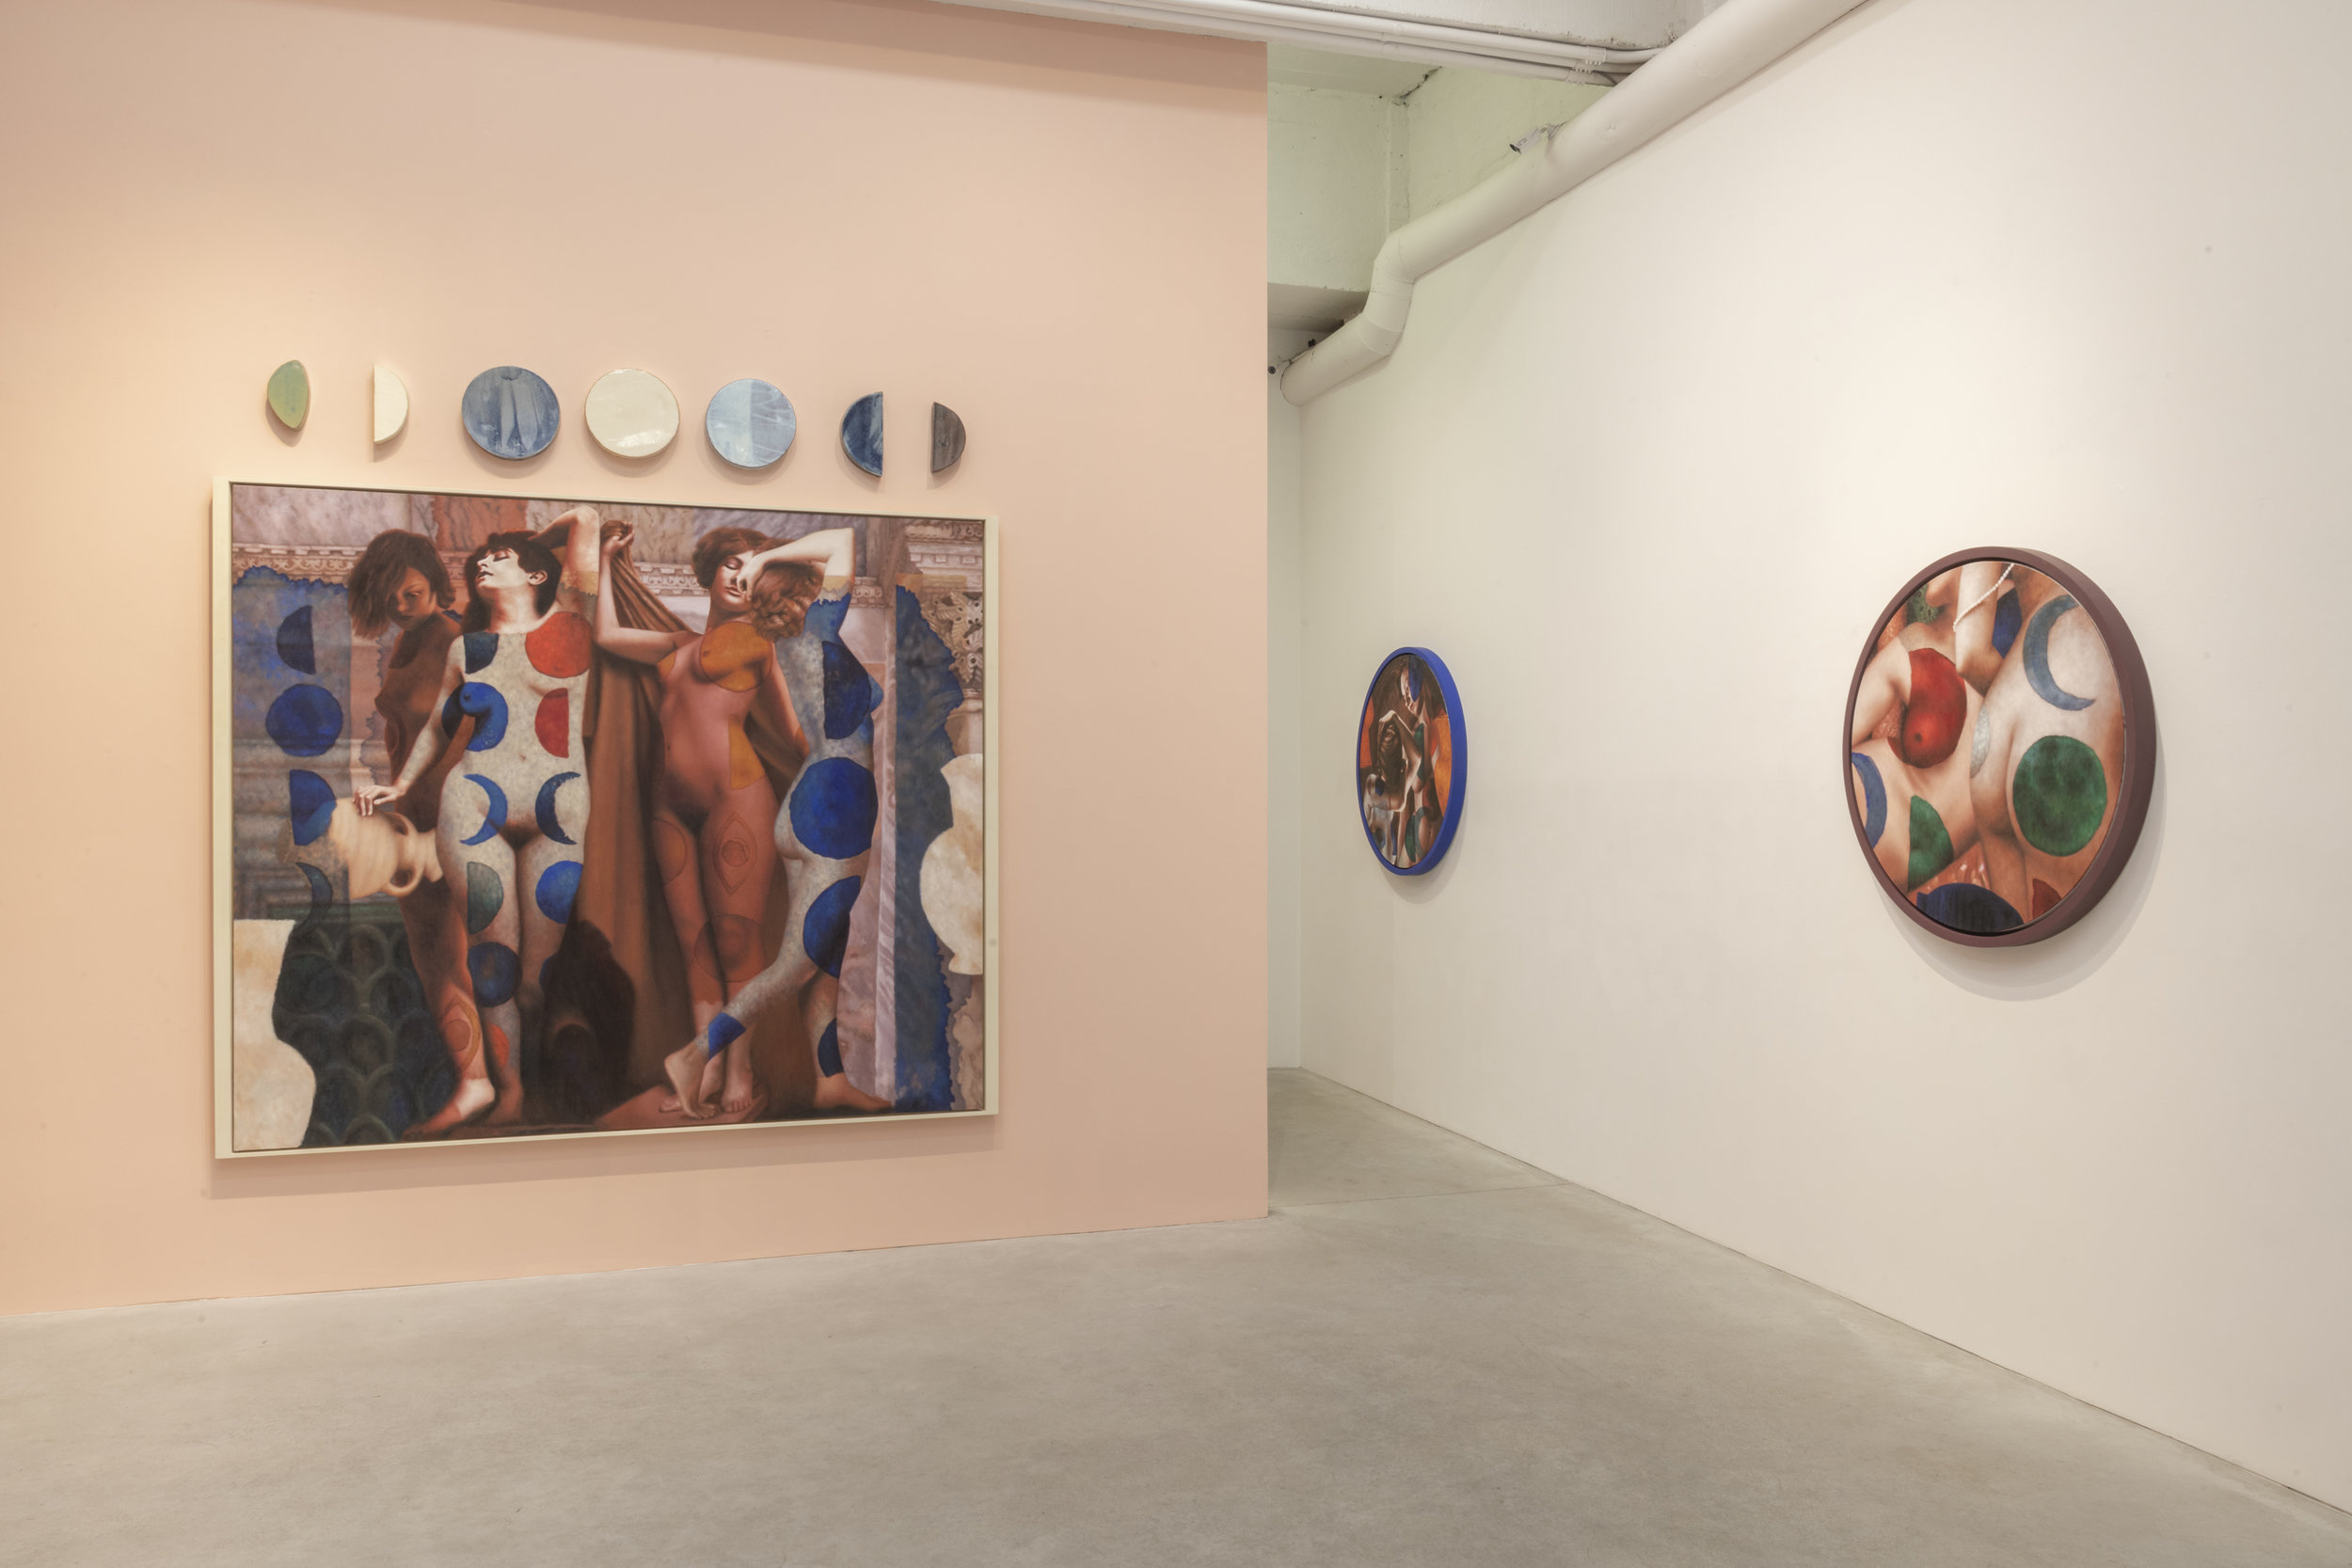 Alison Blickle, The Myth of Inanna, Installation View. Courtesy of the artist and Kravets Wehby Gallery.